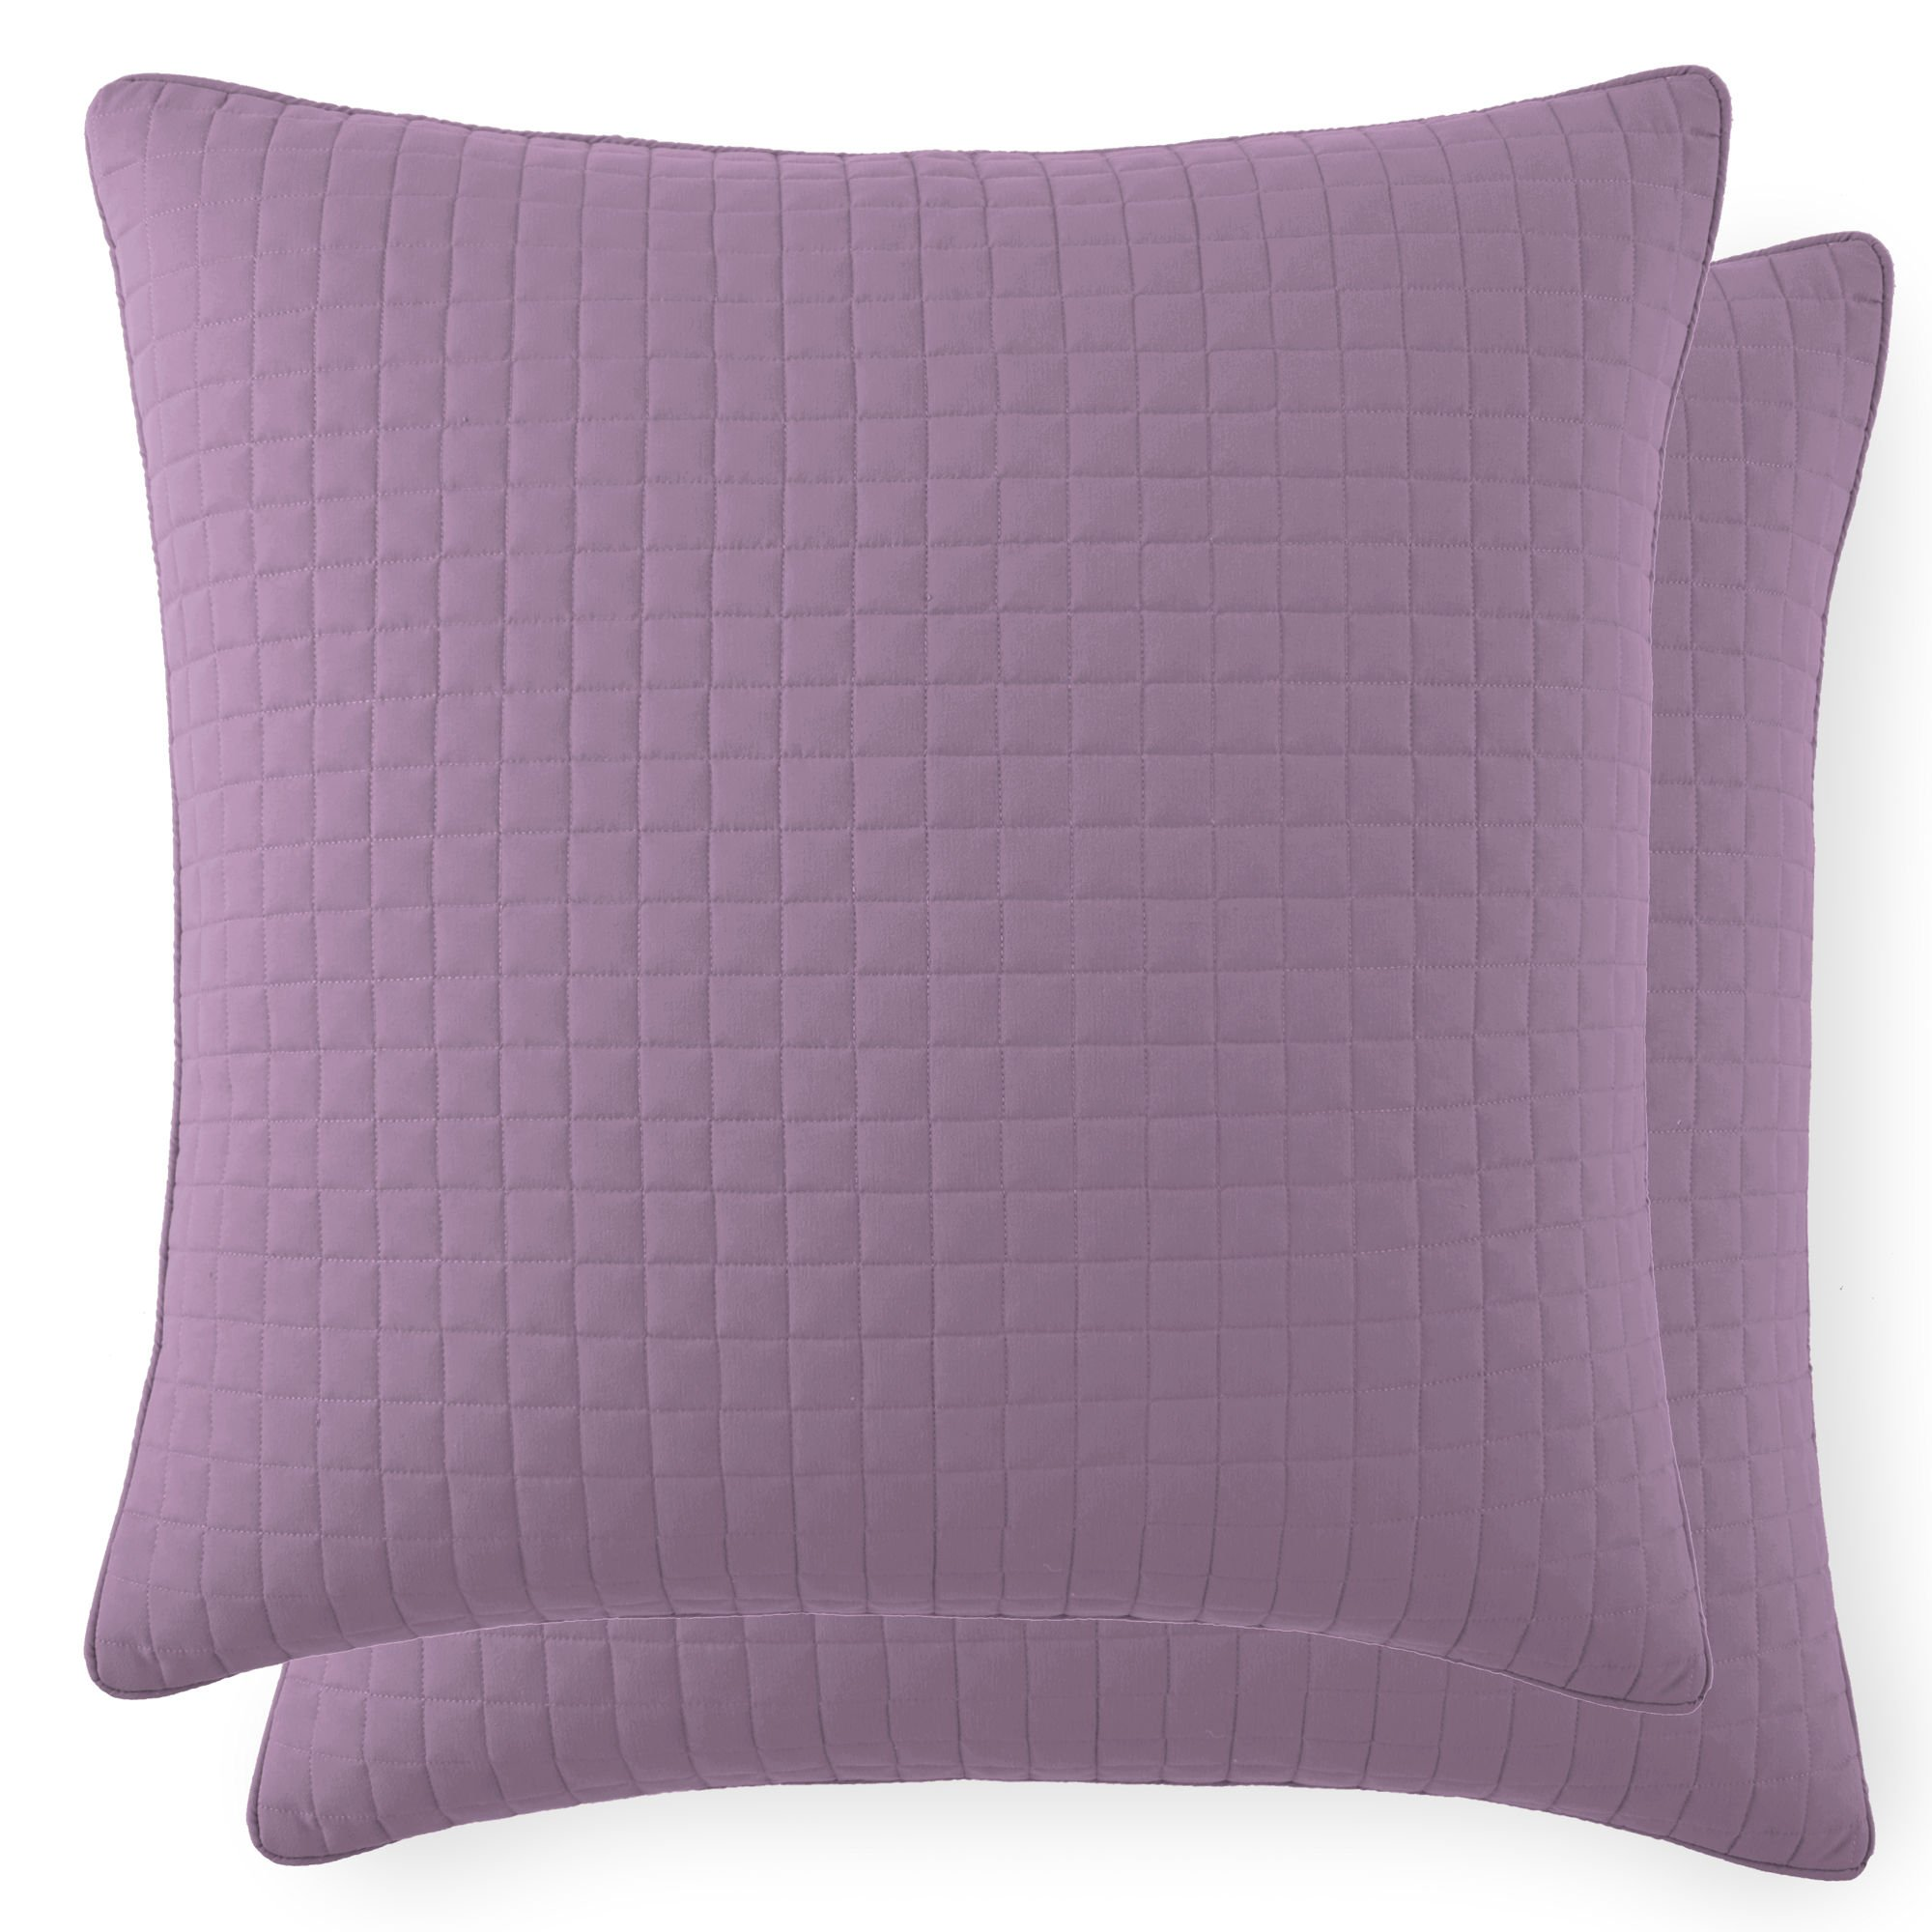 Southshore Fine Linens - VILANO SPRINGS - Pair of Quilted Pillow Sham Covers (No Inserts), 26'' x 26'' , Lavender